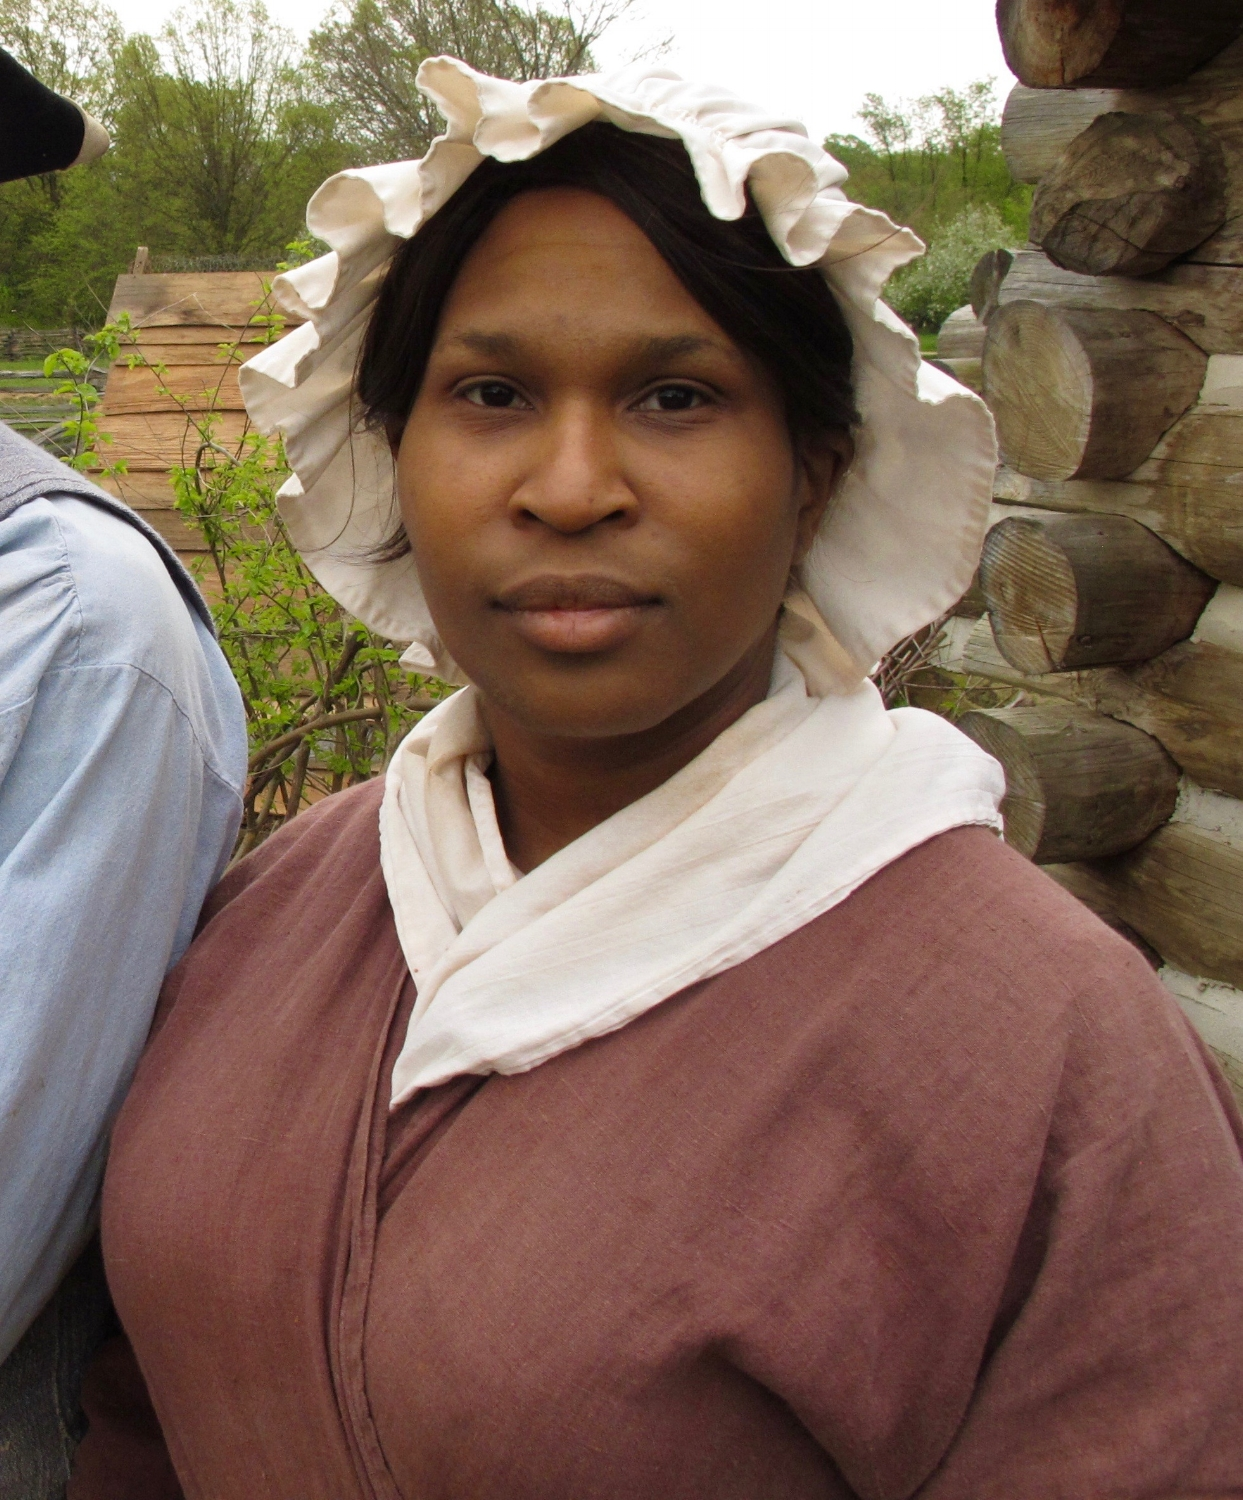 Shemika Berry works as a museum interpreter for Accokeek Foundation, but also has her own business portraying other historic black women for school audiences.